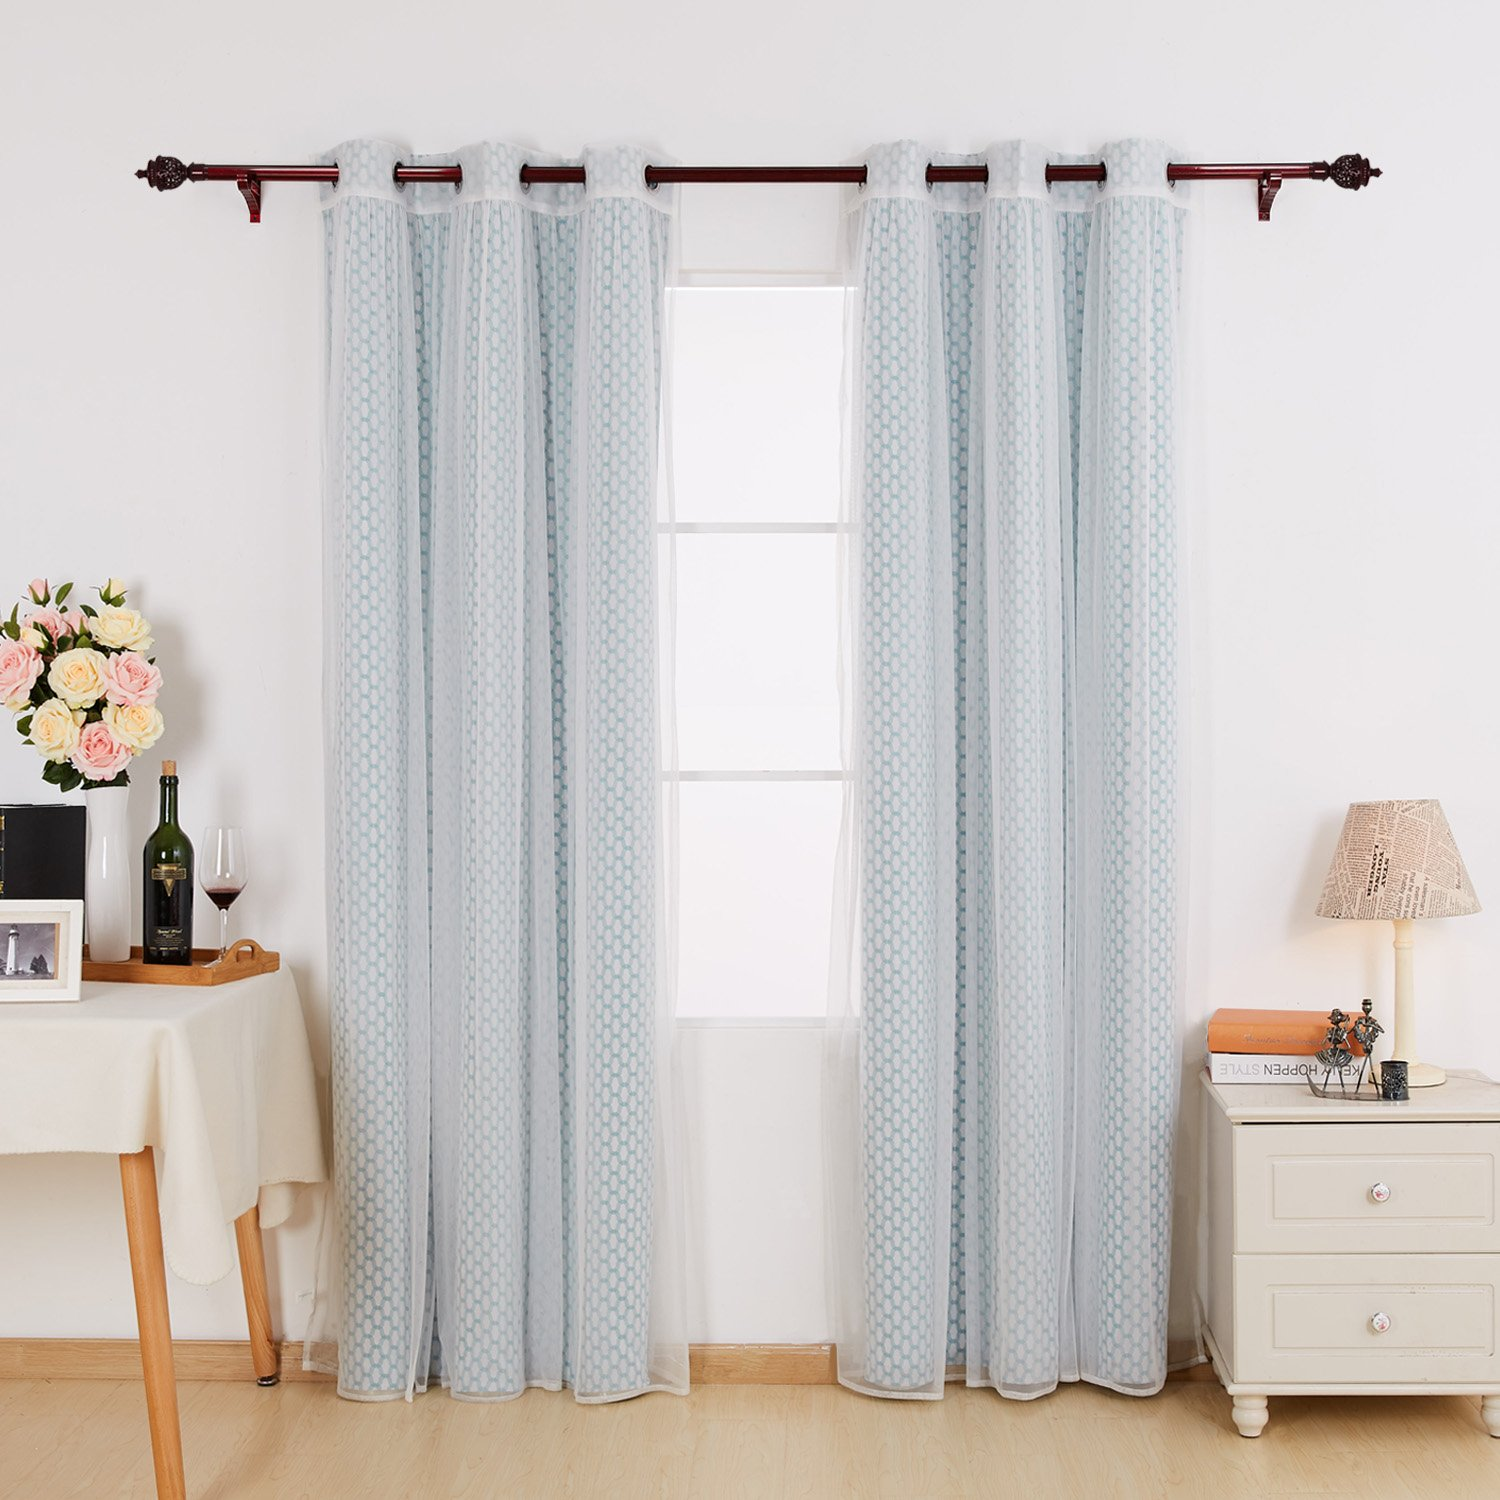 medium signature curtains grommet curtain blue drapes black full vertical sheer pretty pink material linen velvet darkening gold with of yellow off ideas size gray panels awesome striped decoration and white teal short blackout for thermal grommets grey light walmart homey target